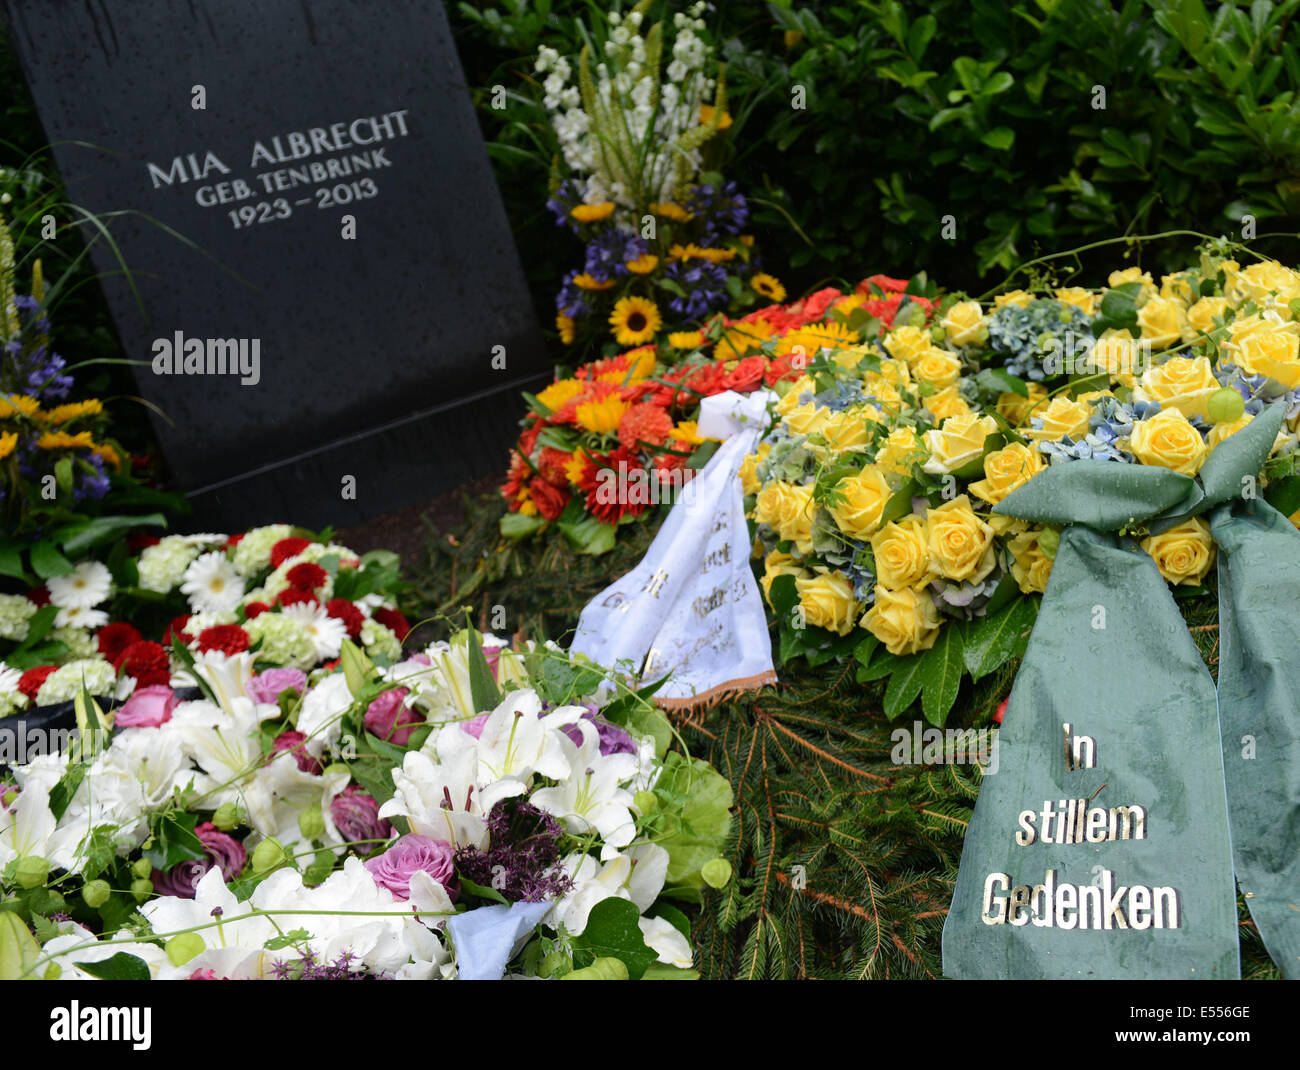 Flowers On Grave After Funeral Stock Photos Flowers On Grave After